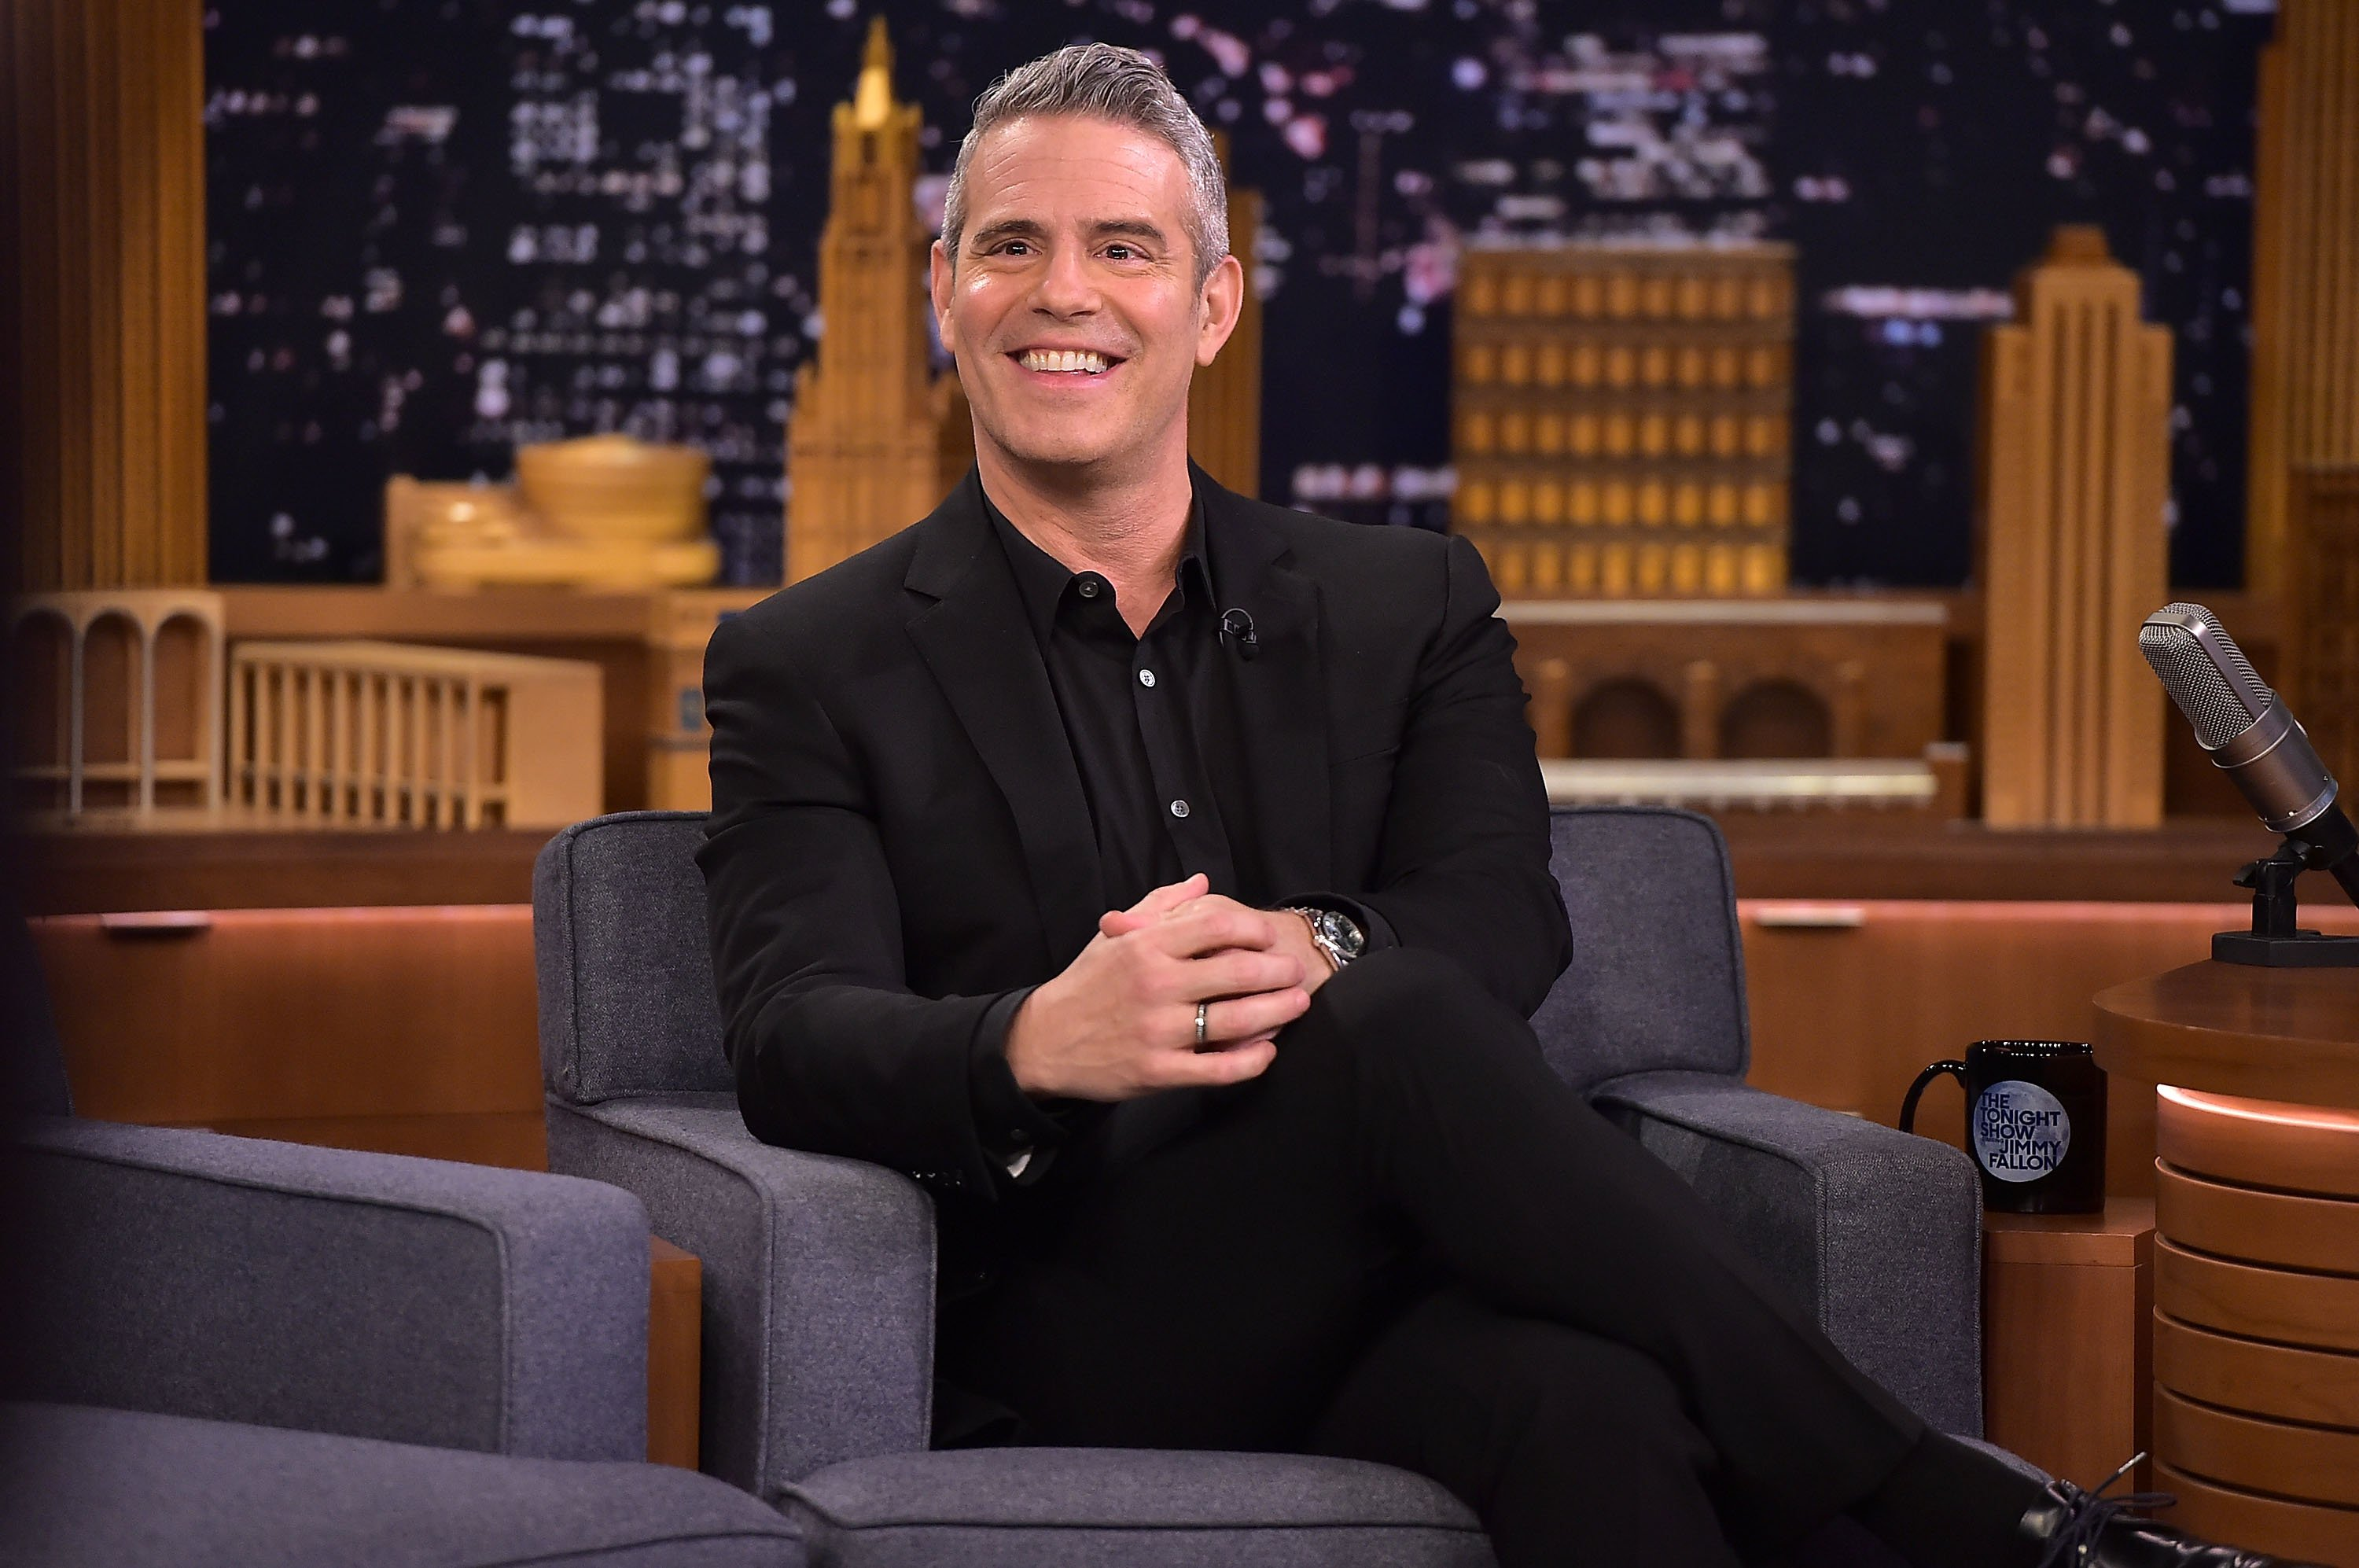 """Andy Cohen visits """"The Tonight Show Starring Jimmy Fallon"""" in New York City on December 5, 2018. 